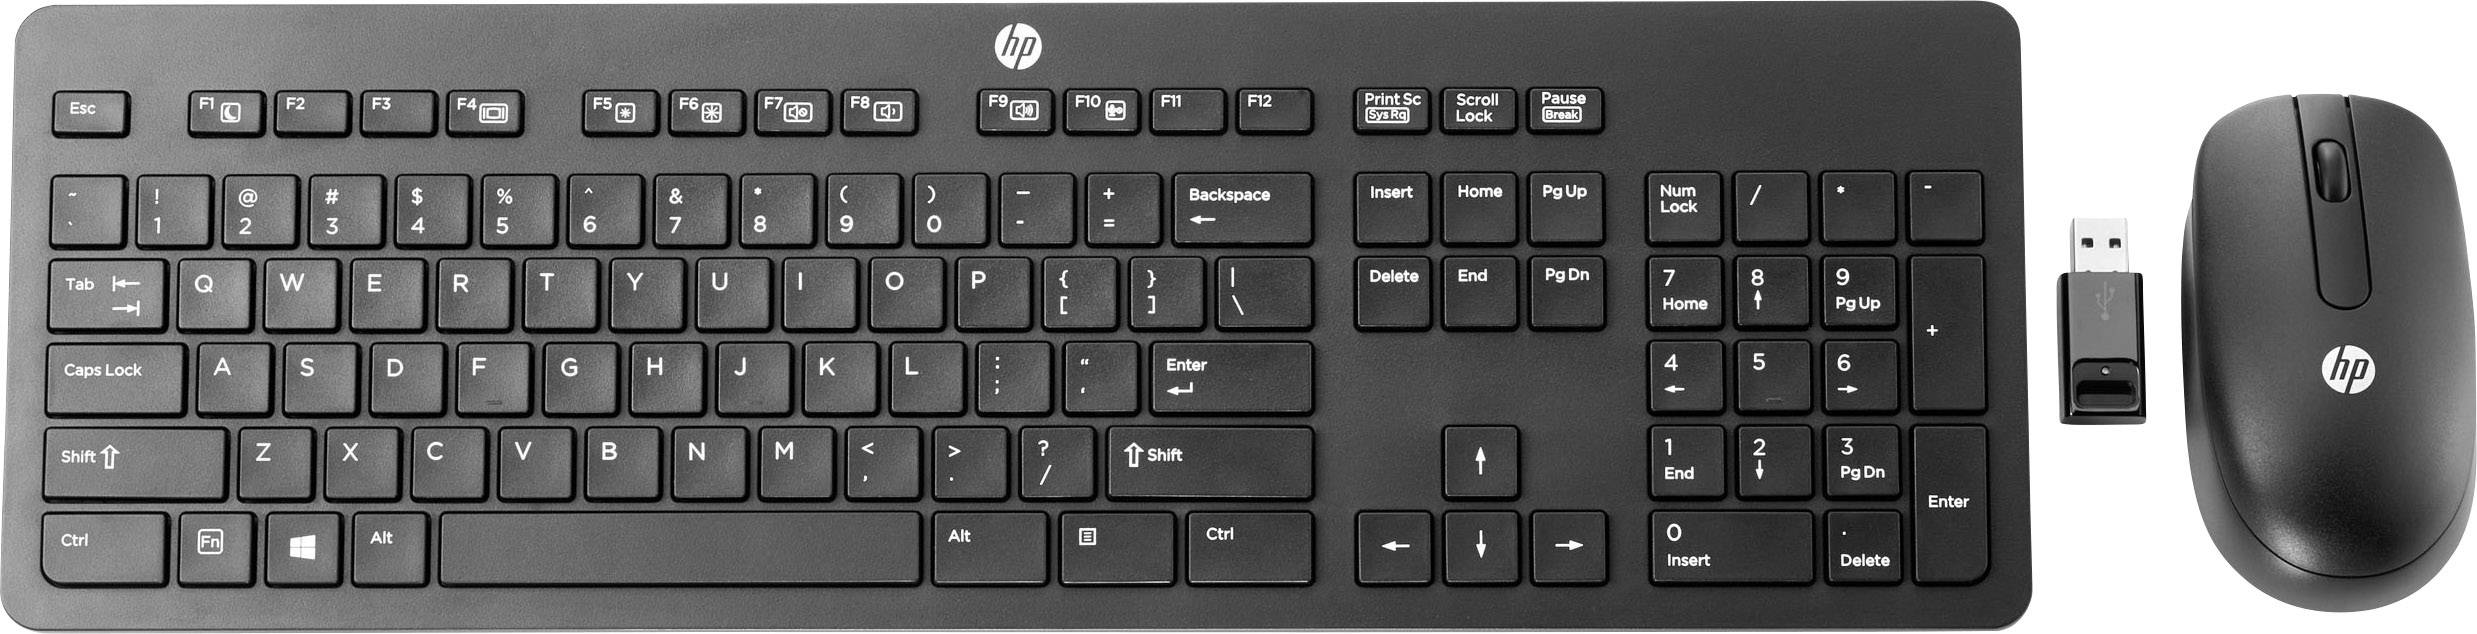 HP Slim Wireless Keyboard & Mouse Wireless keyboard/mouse